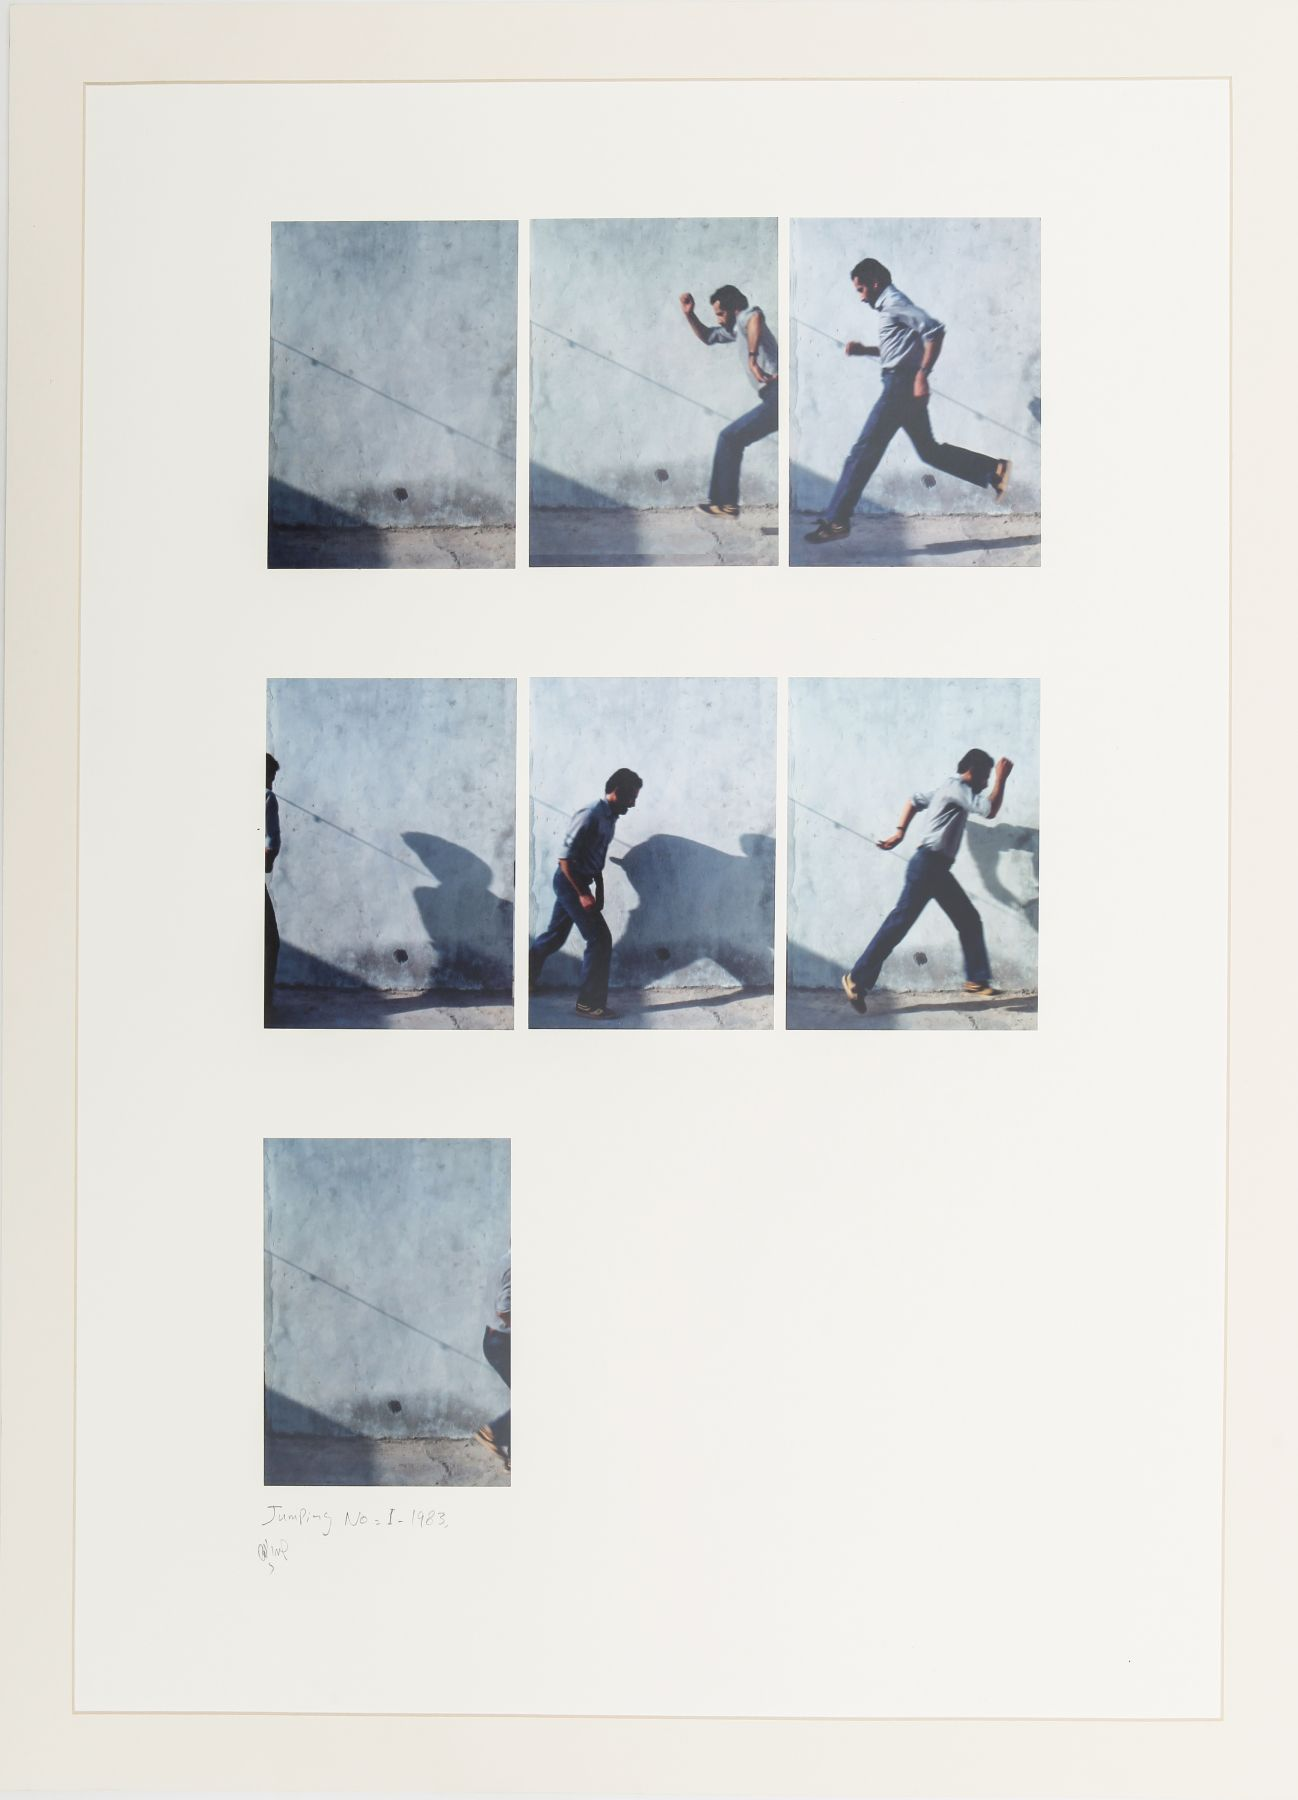 Jumping No. 1, 1983, Photographs mounted on cardboard in 7 parts